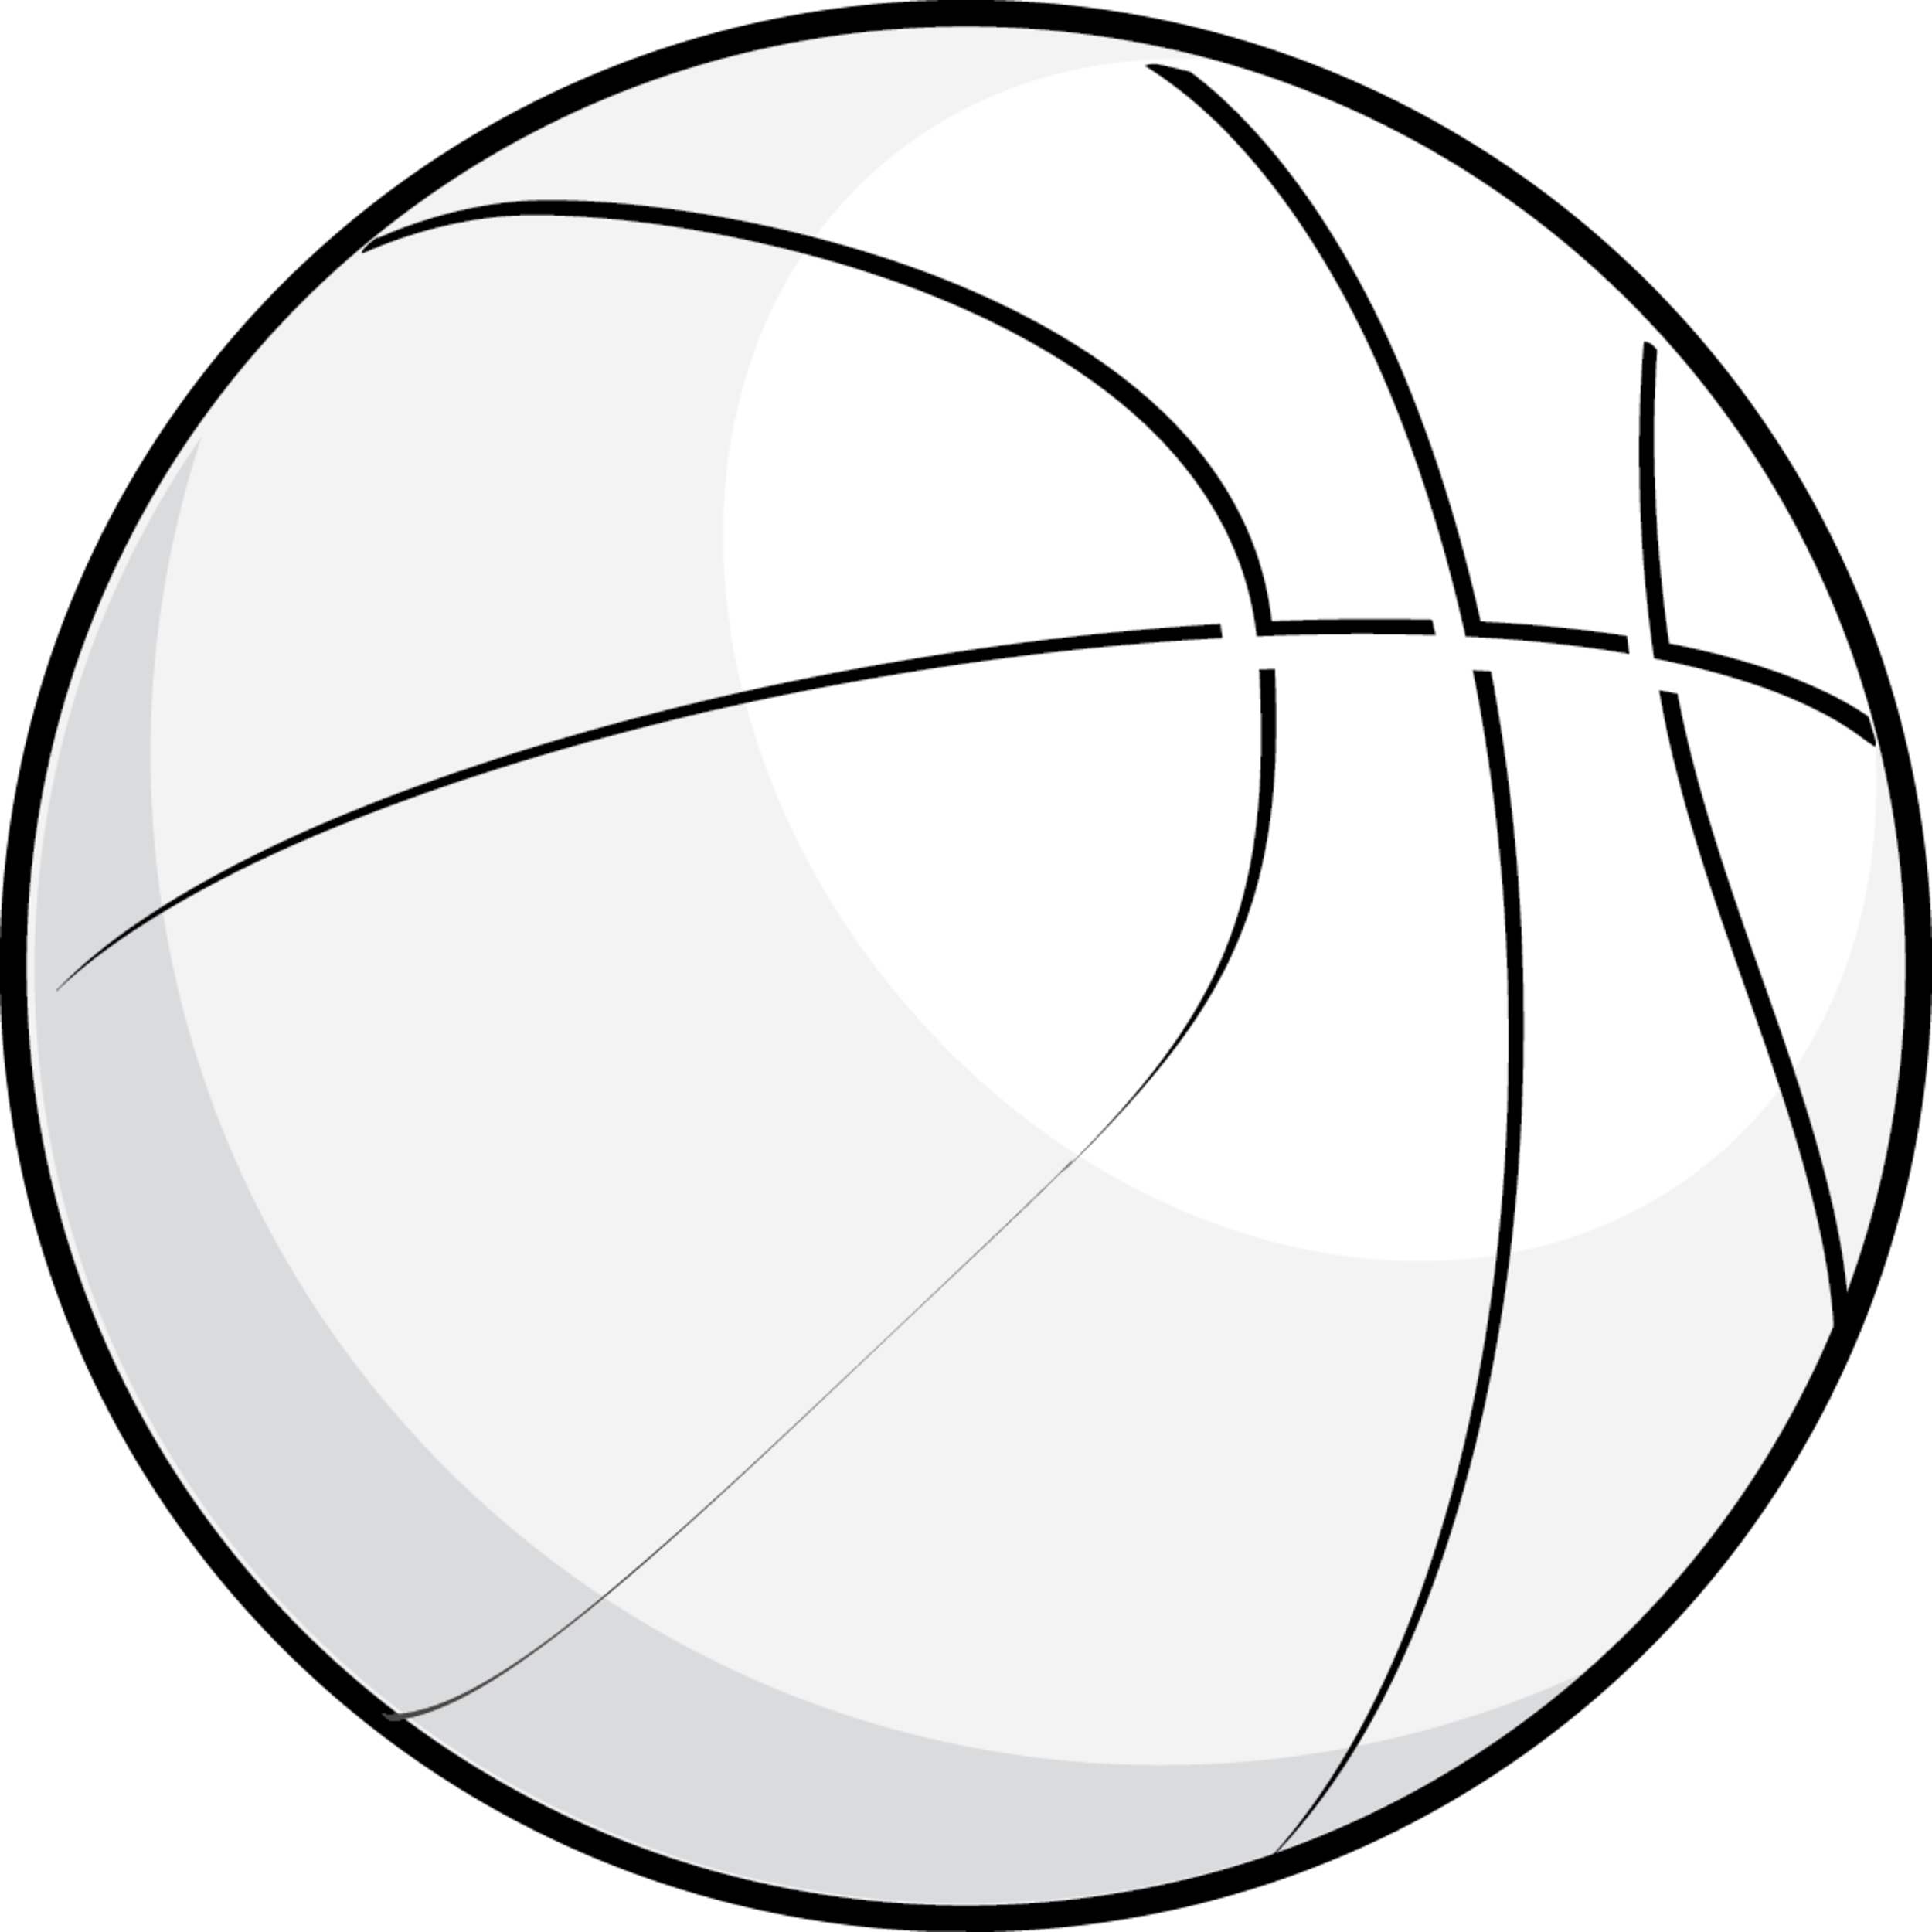 2500x2500 Free Black And White Basketball Clipart